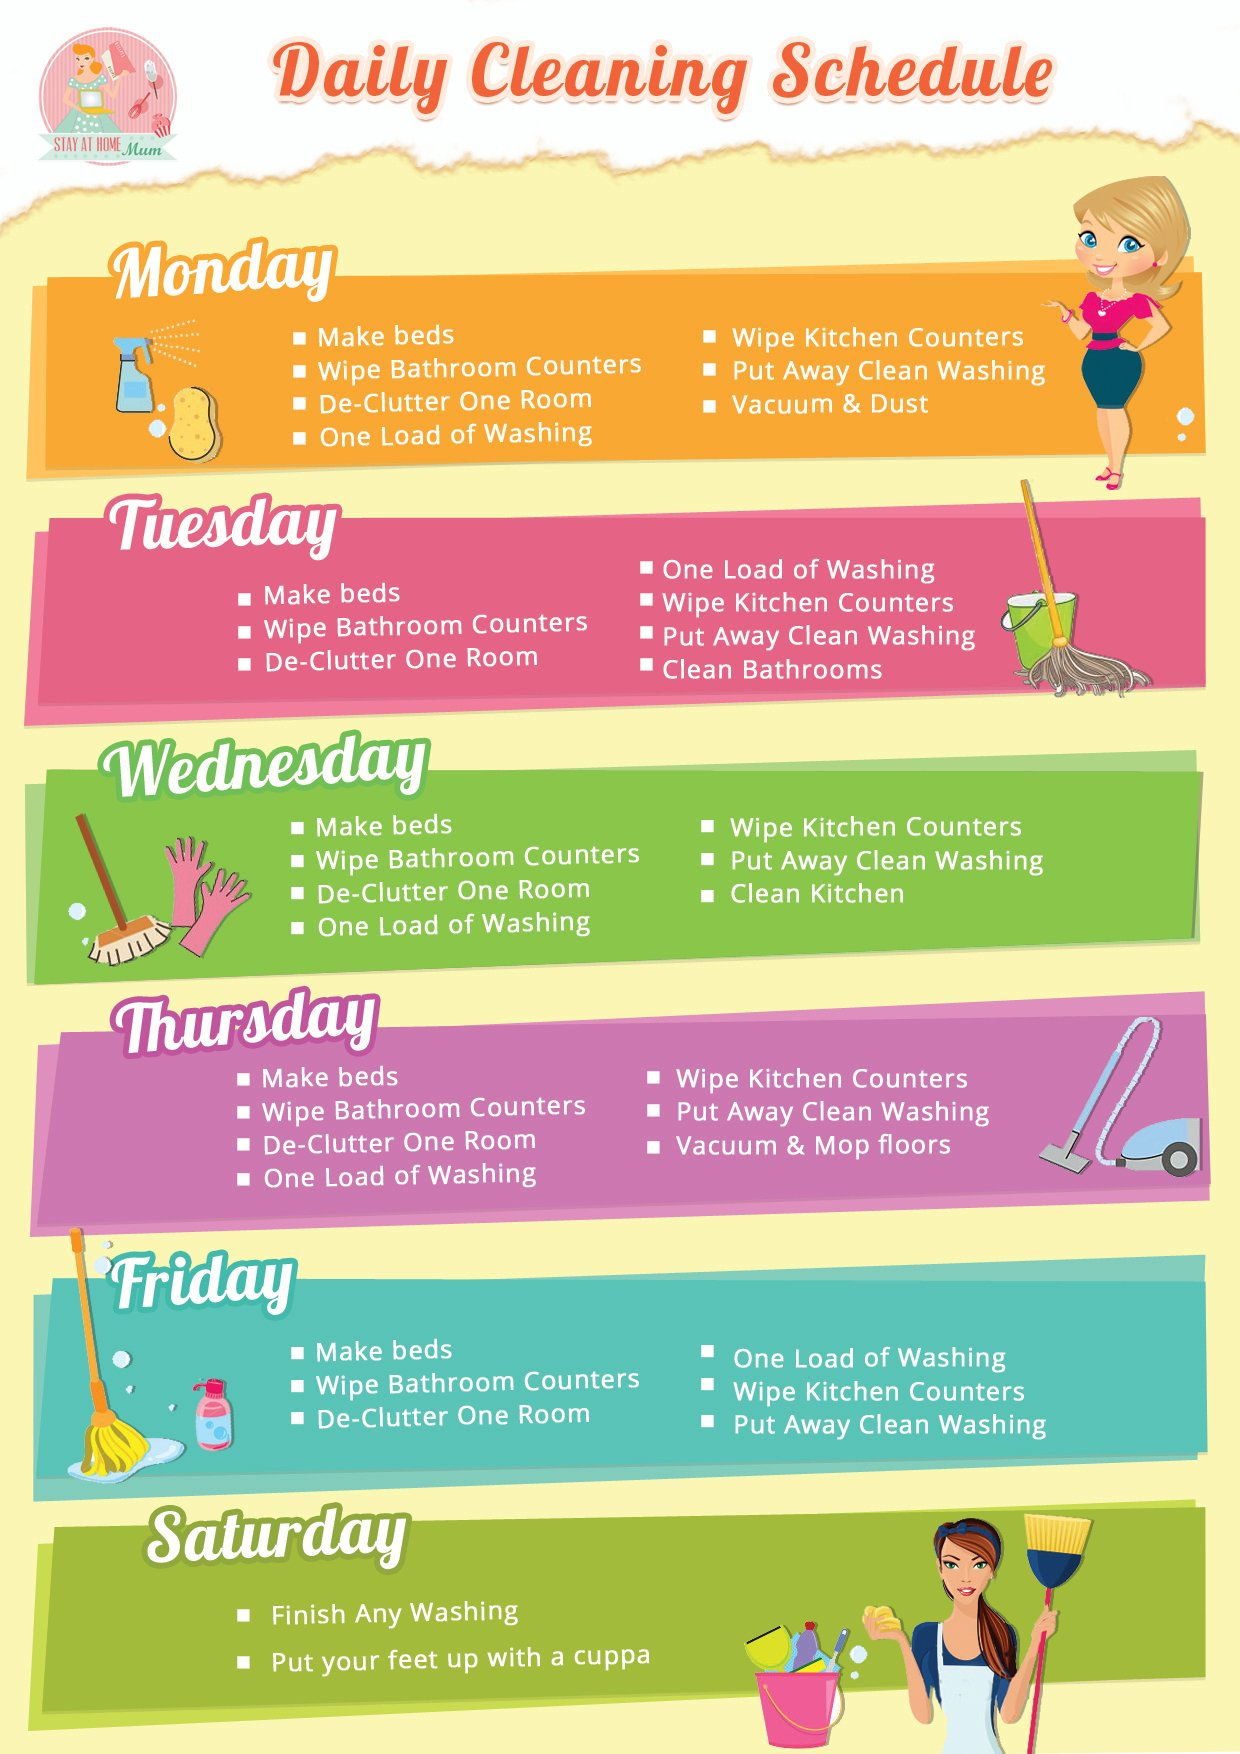 Daily Home Cleaning Schedule | Stay at Home Mum